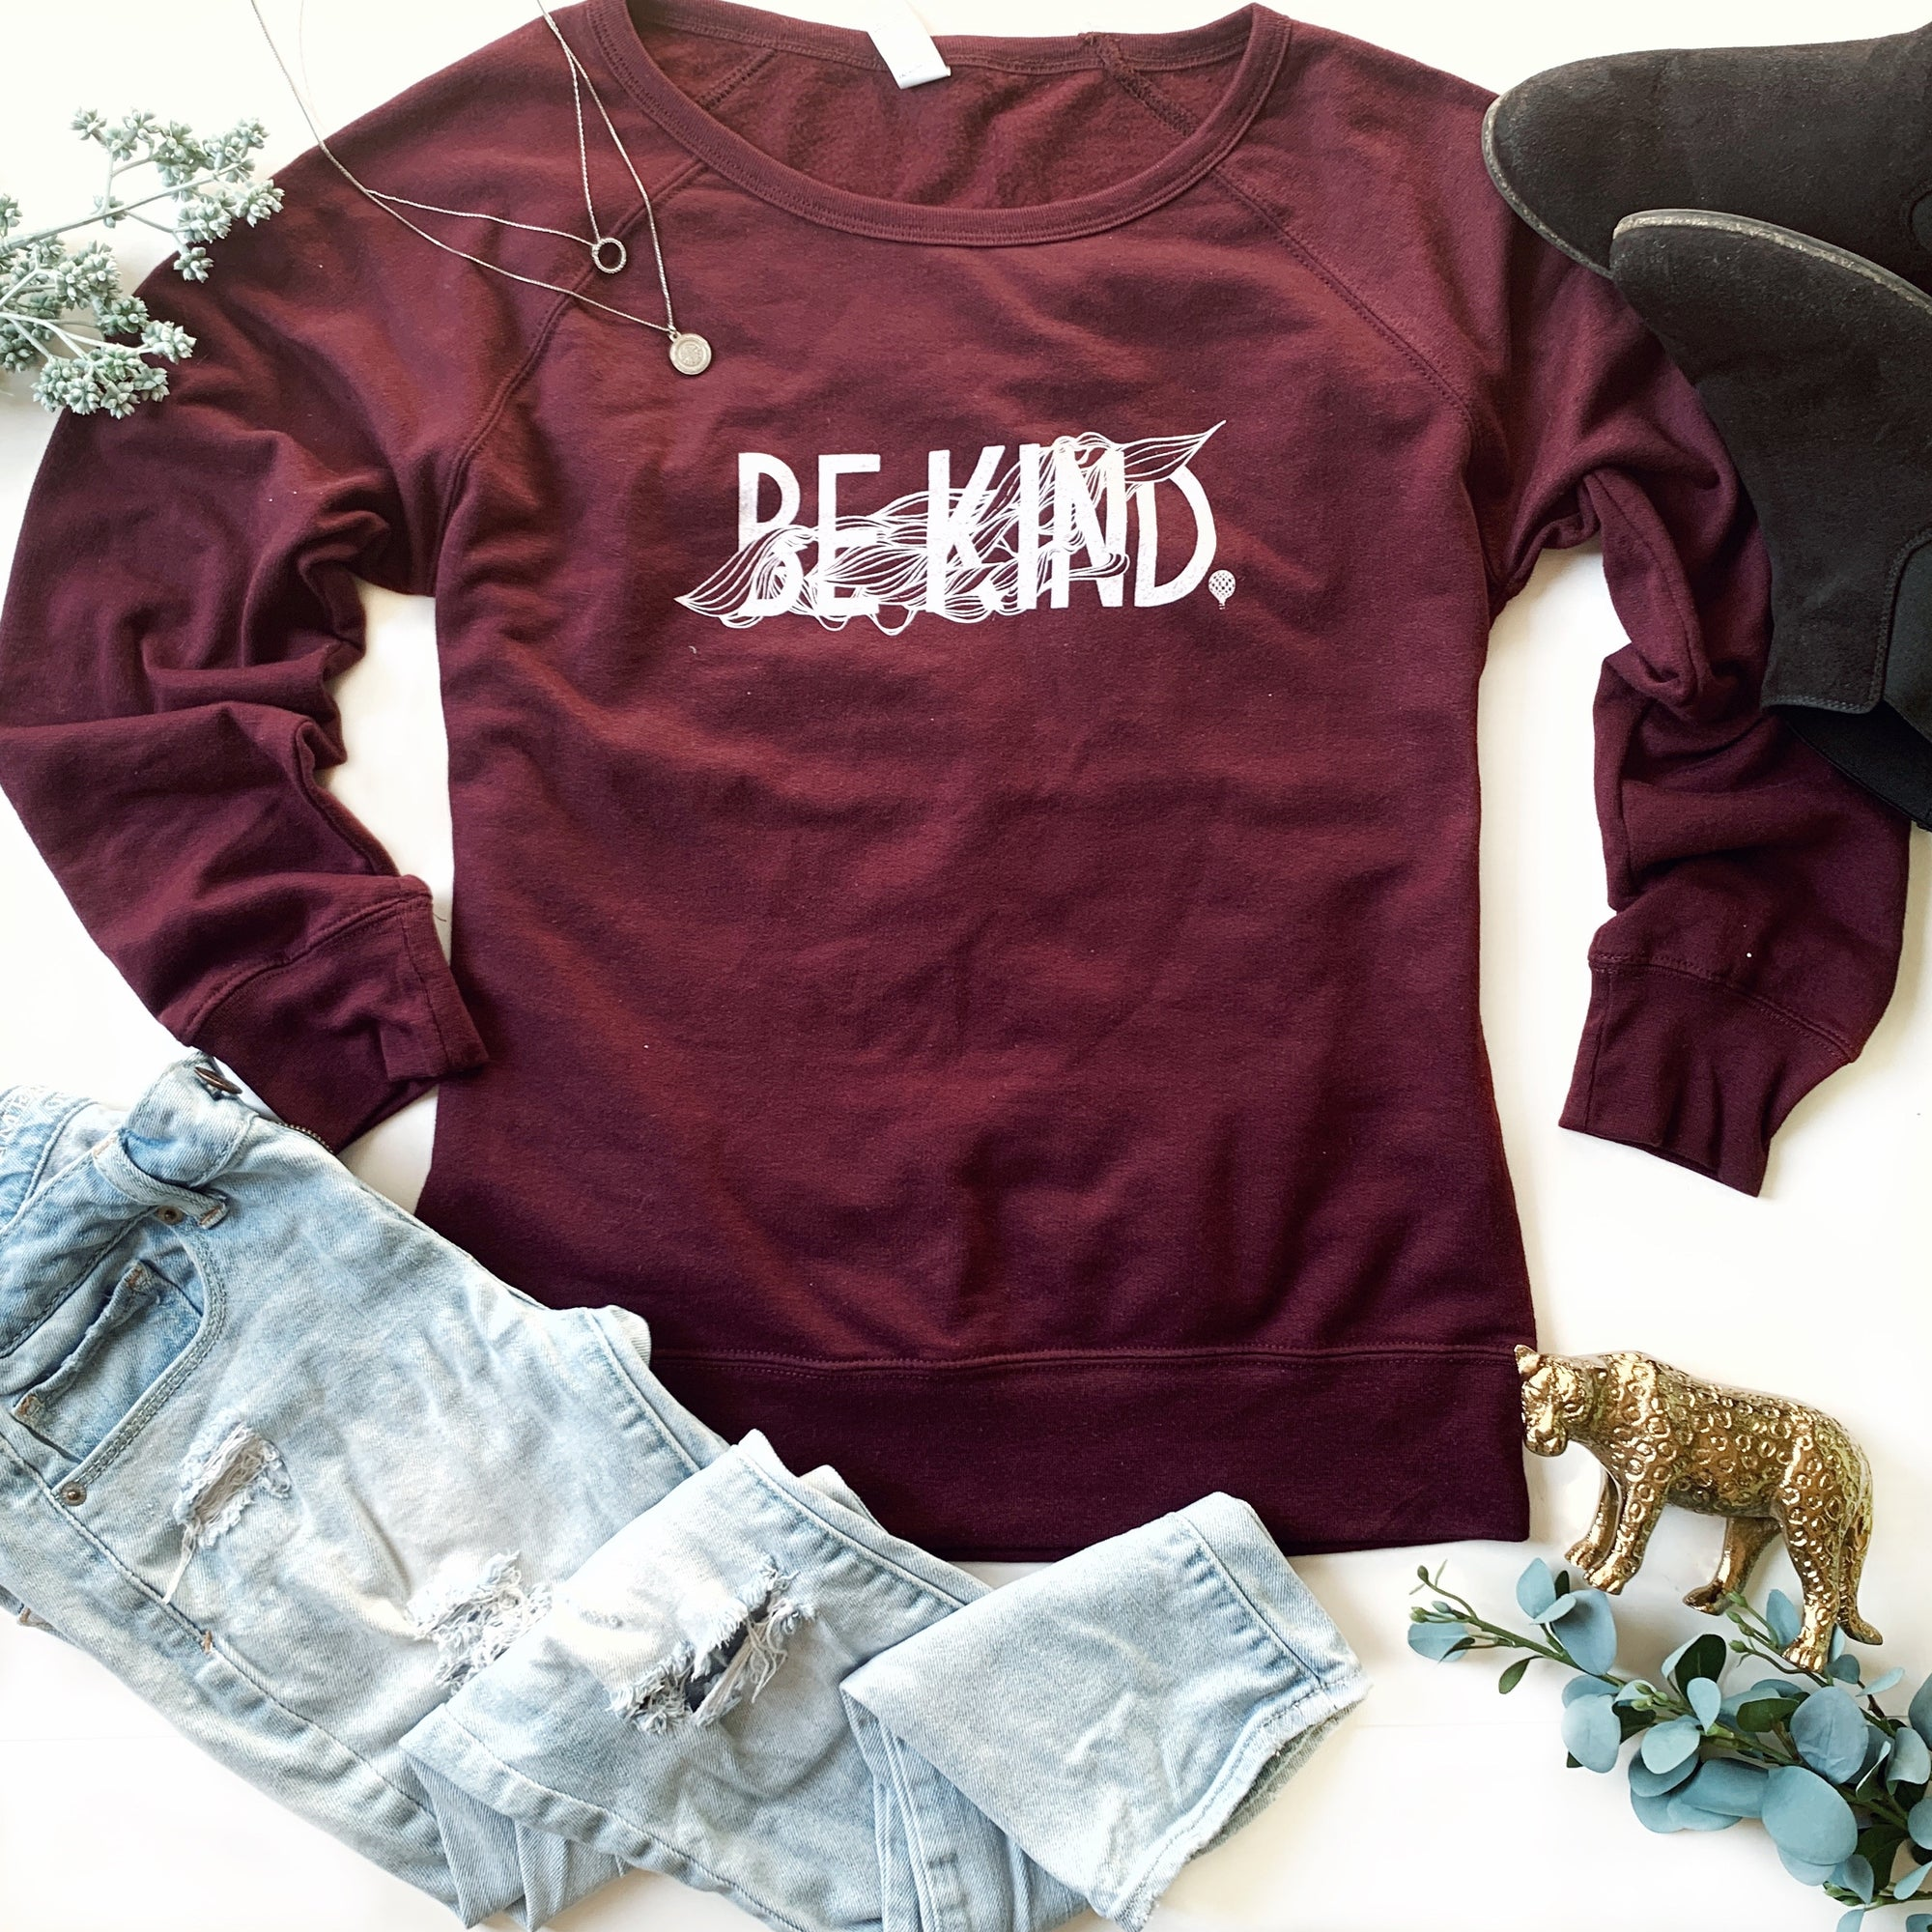 BE KIND | lightweight sweatshirt | maroon